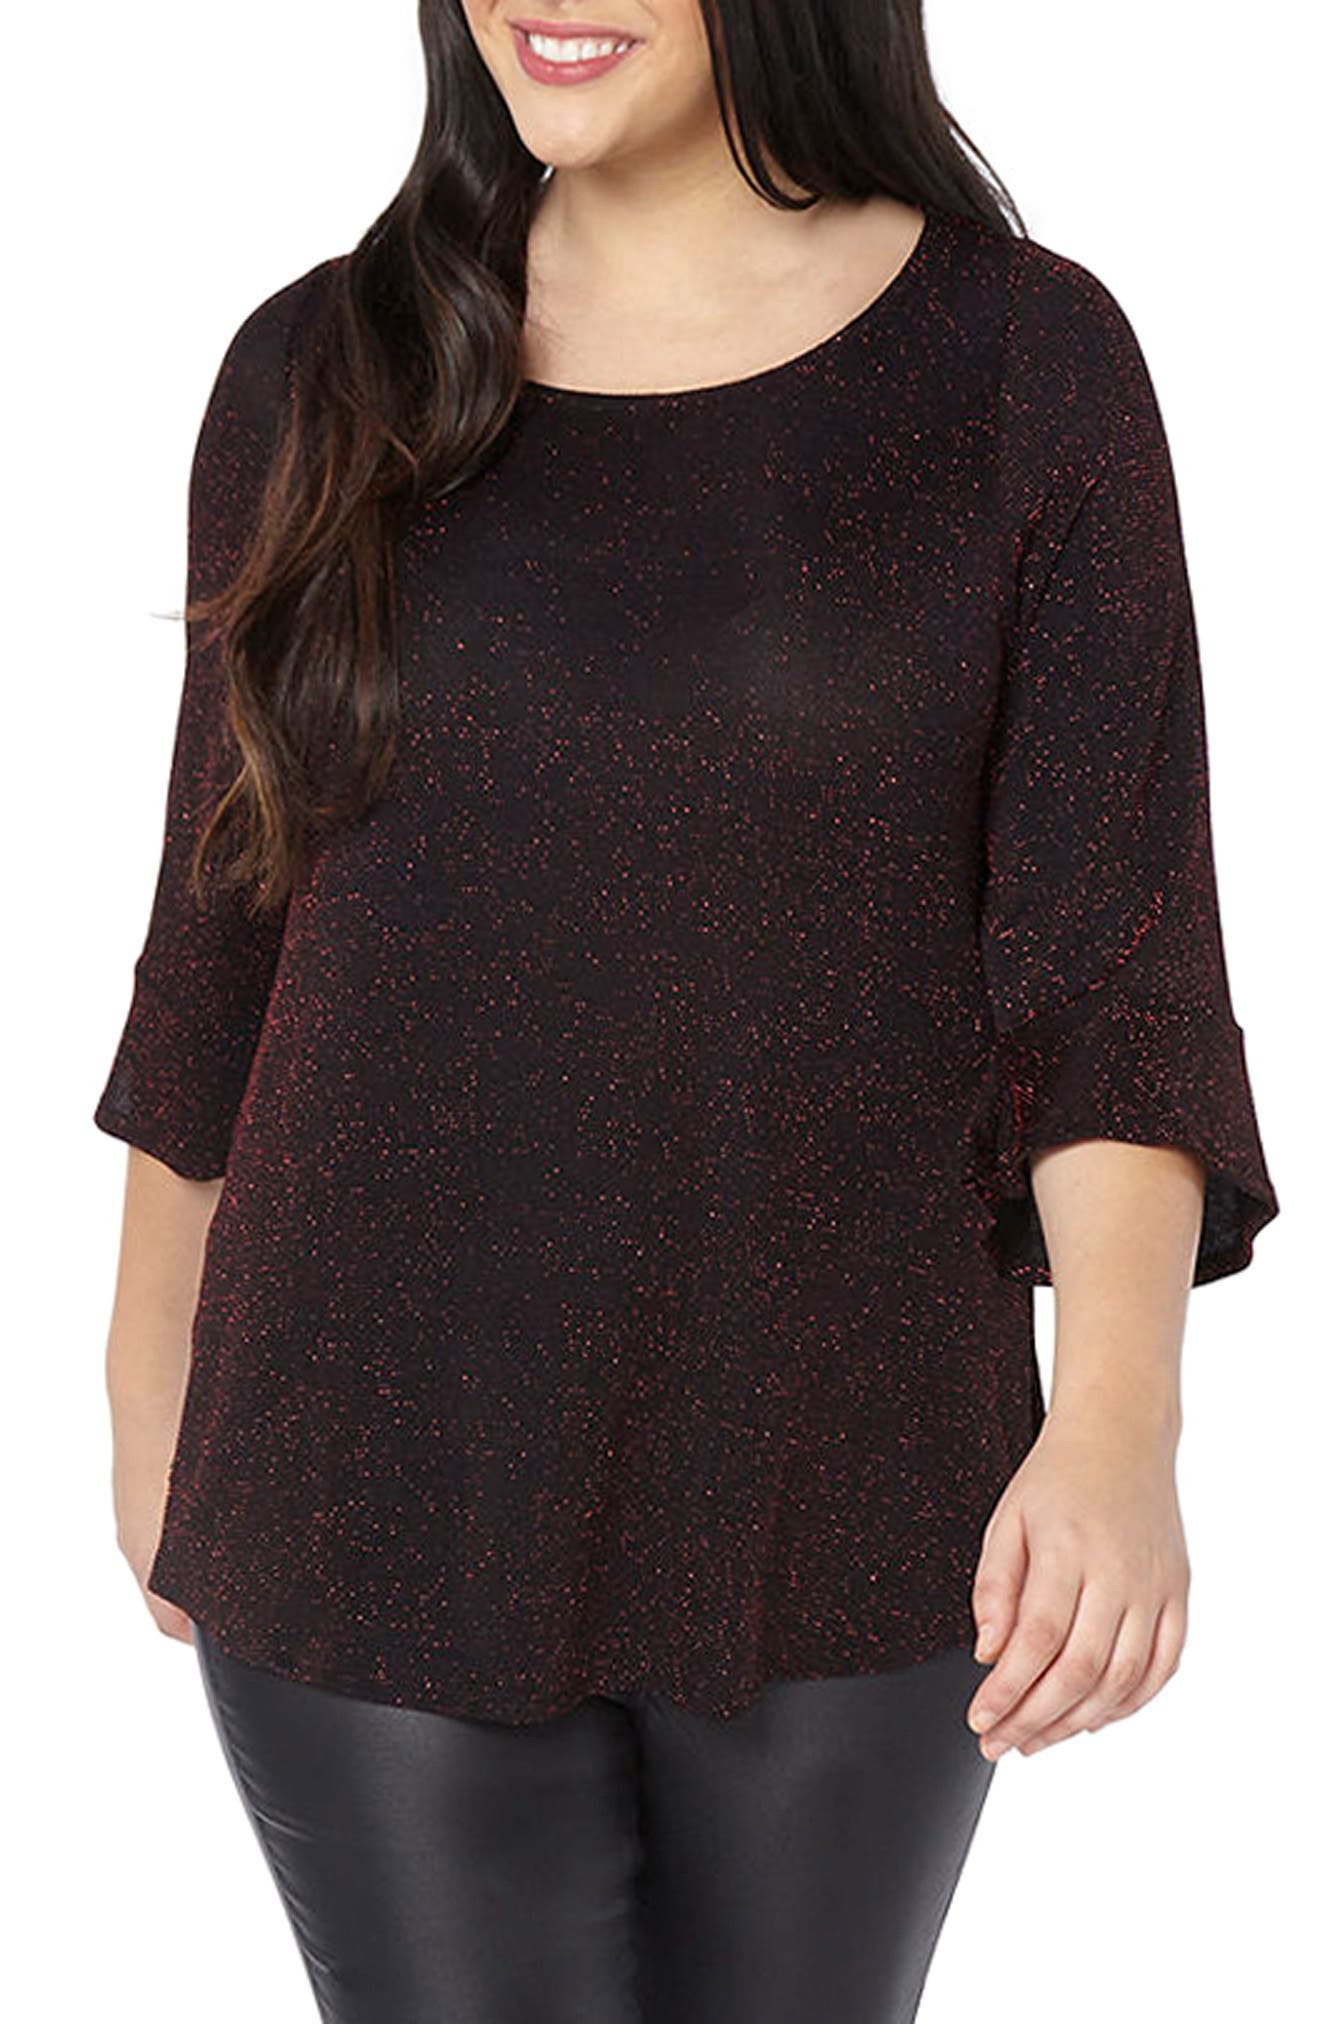 Main Image - Evans Glitter Bell Sleeve Top (Plus Size)